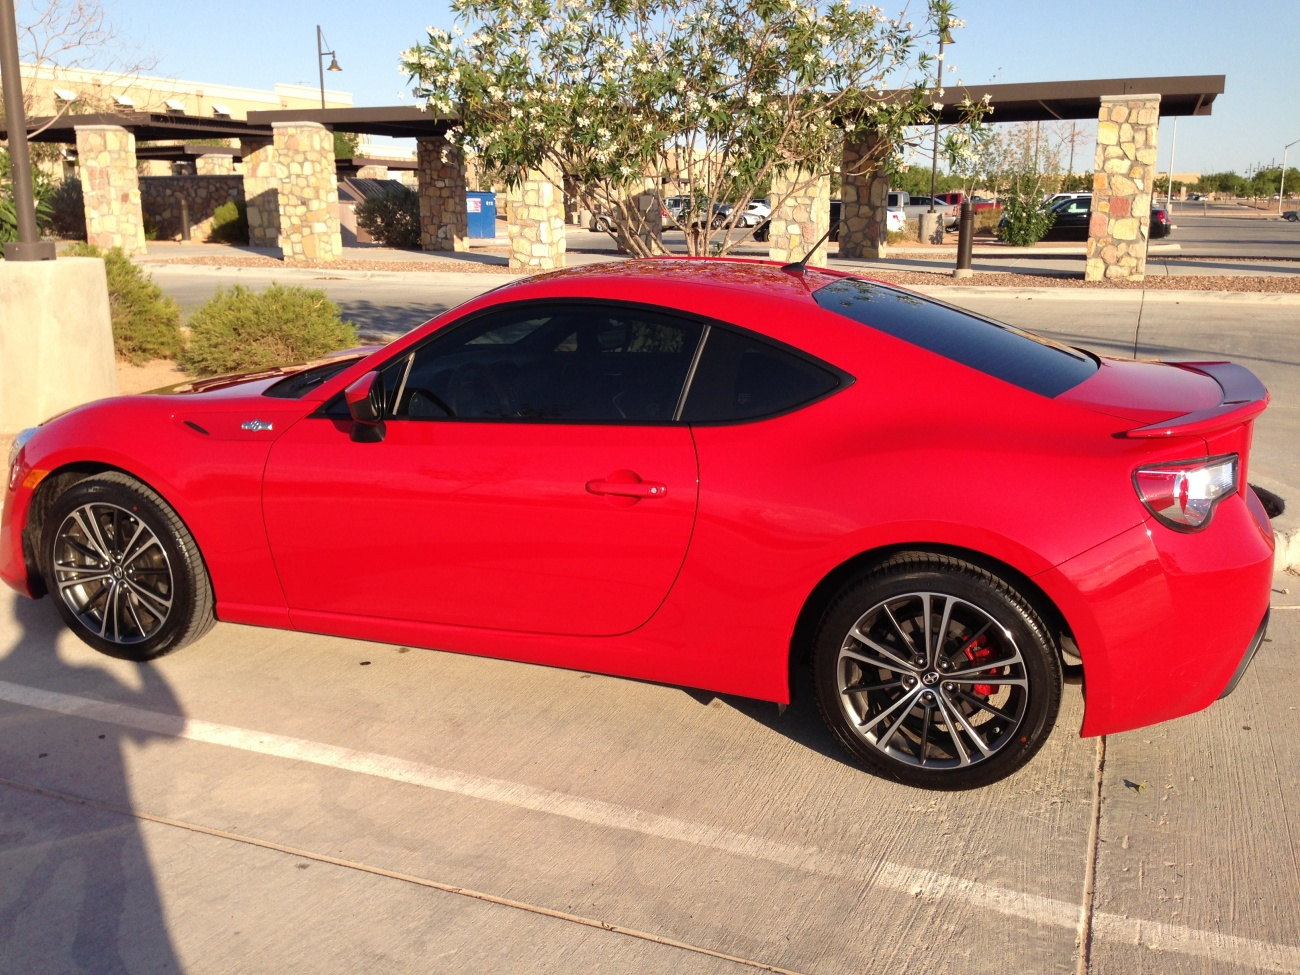 Window tint frs brz scion fr s forum subaru brz for 15 window tint pictures